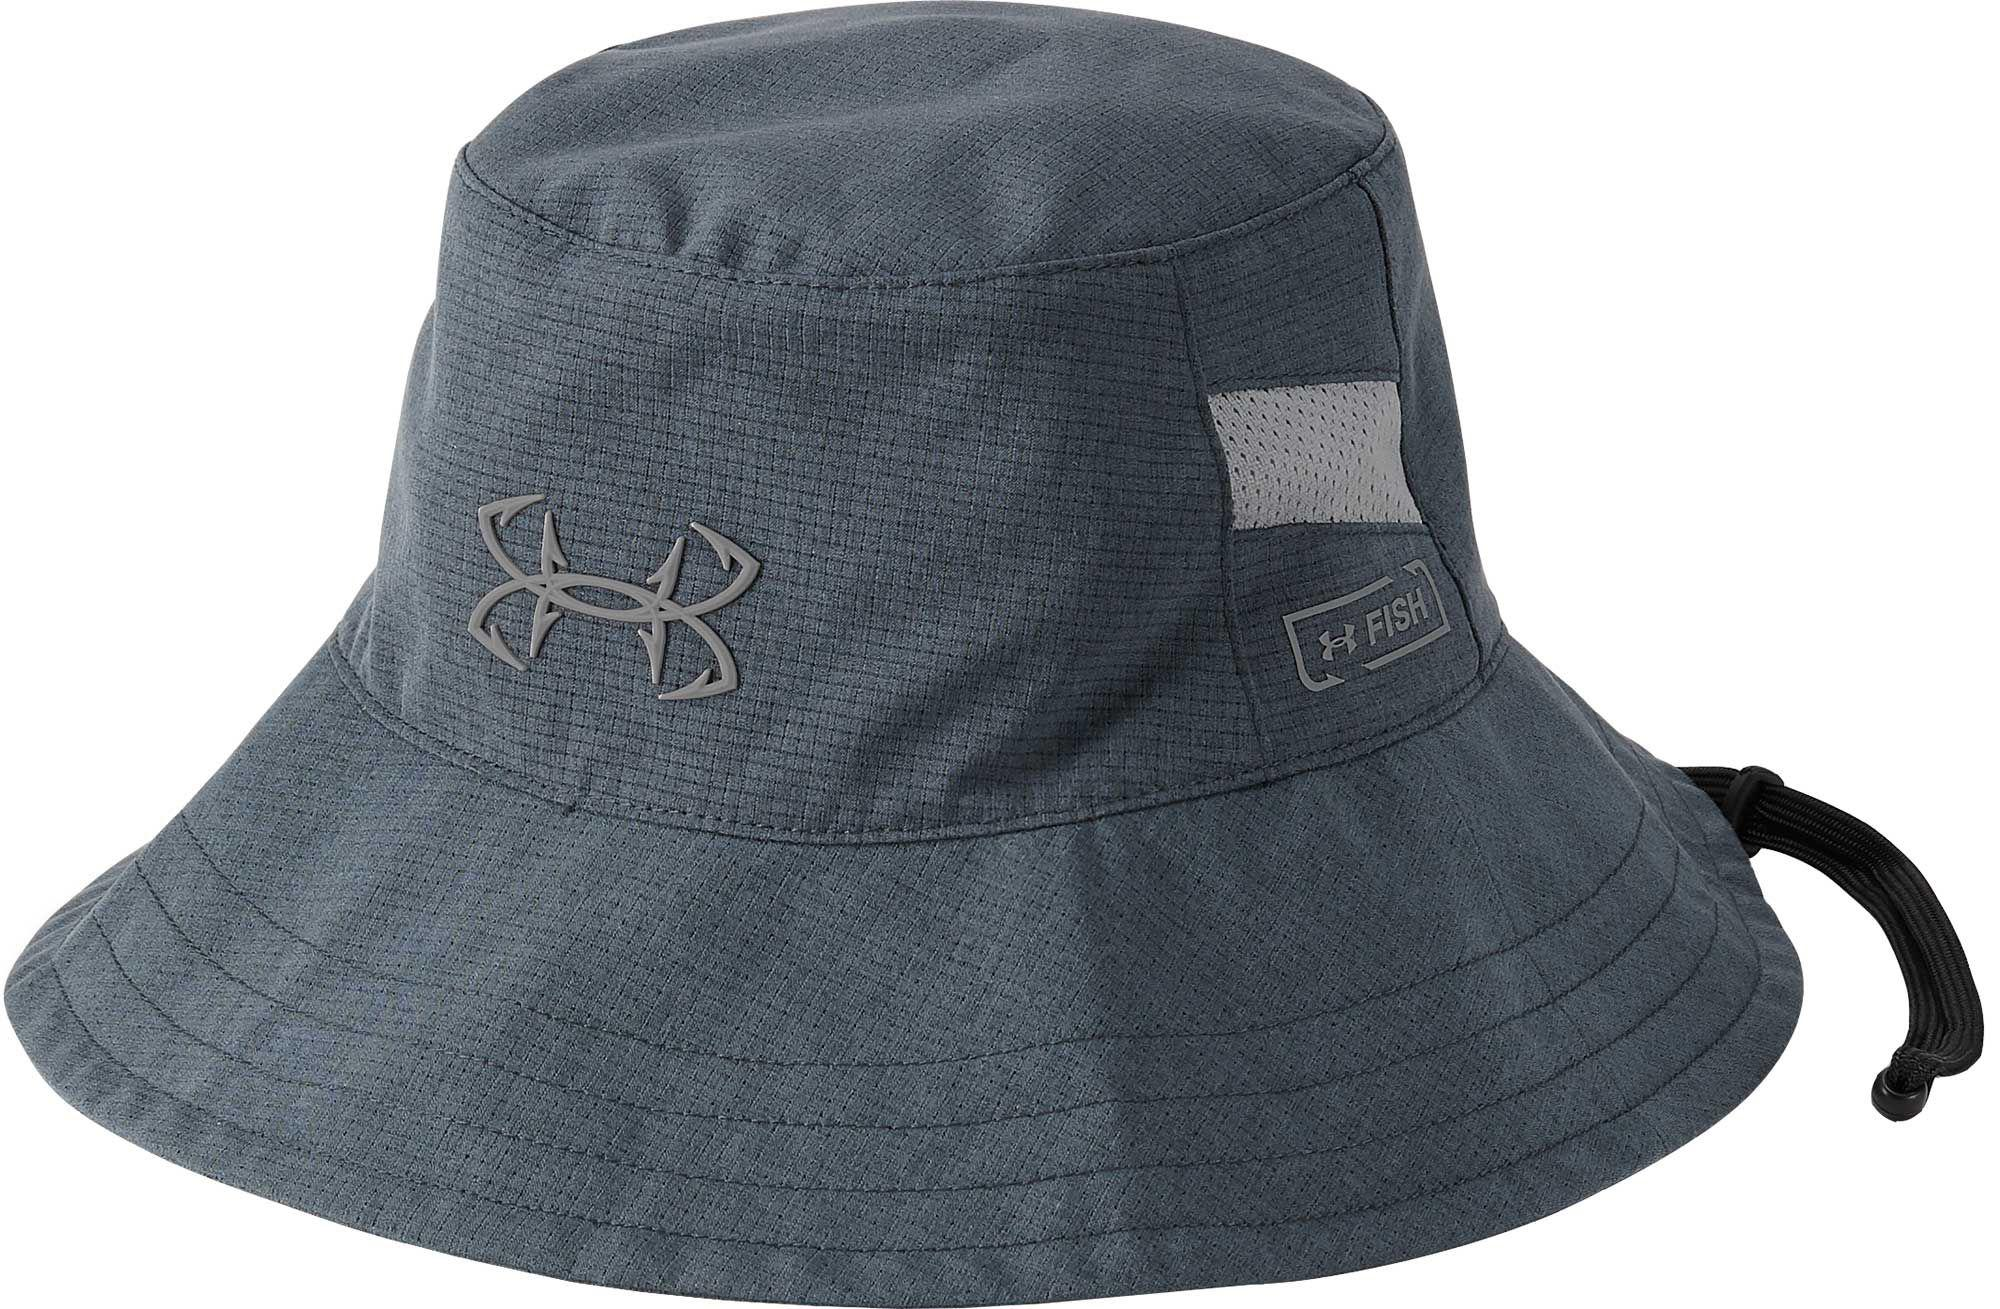 2a34a24359758 Under Armour Thermocline Bucket Hat in Gray for Men - Lyst